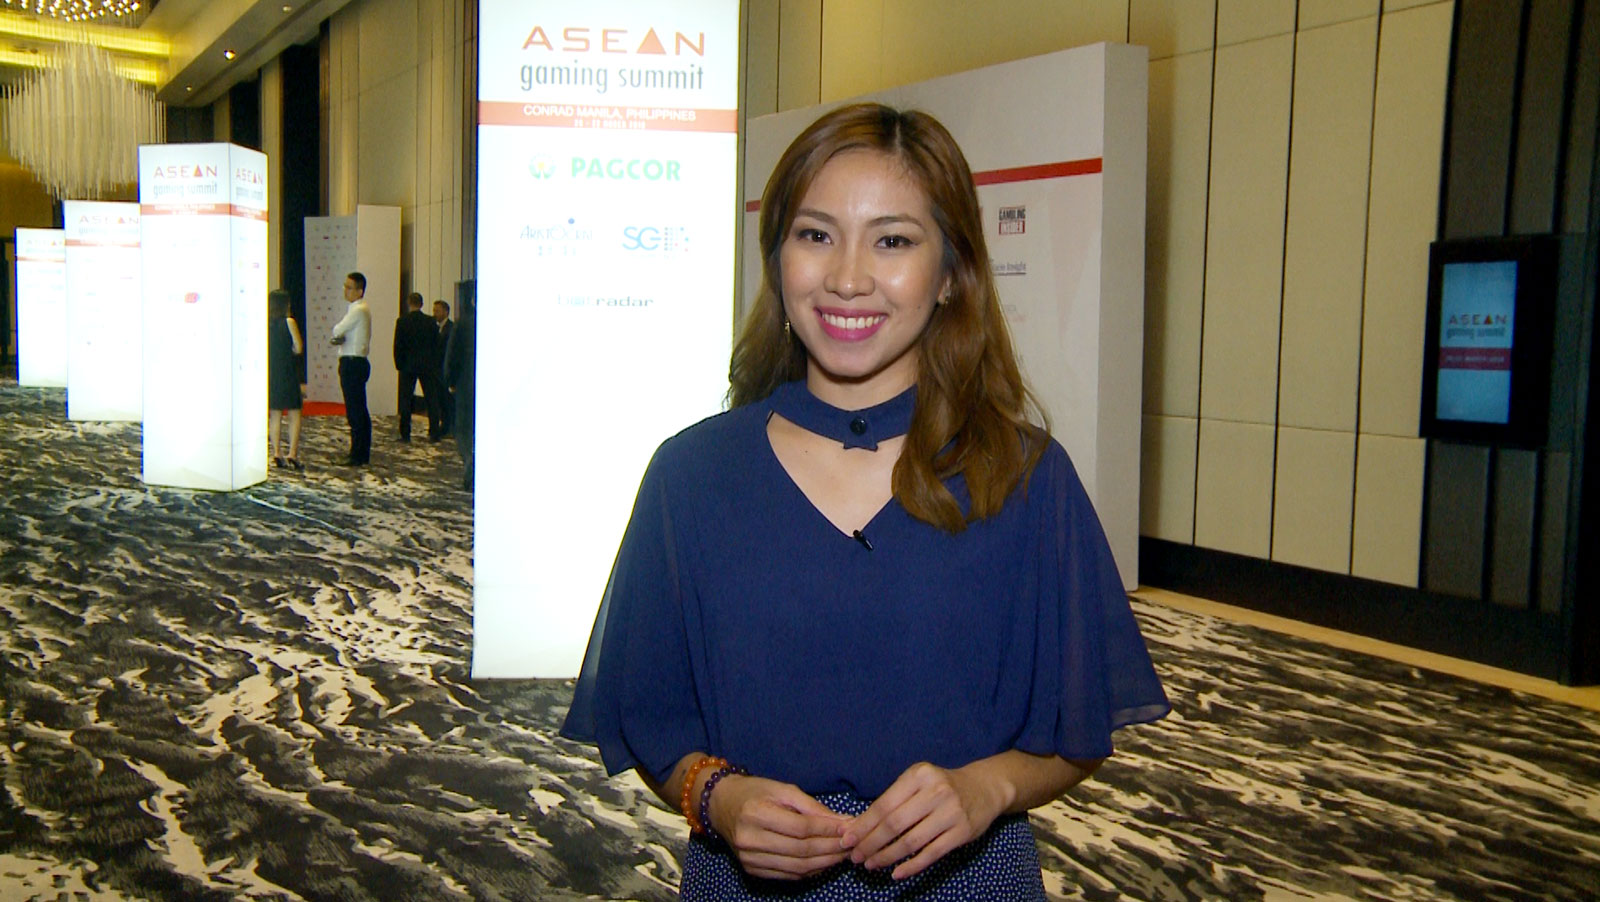 Asean Gaming Summit 2018 day 1 highlights